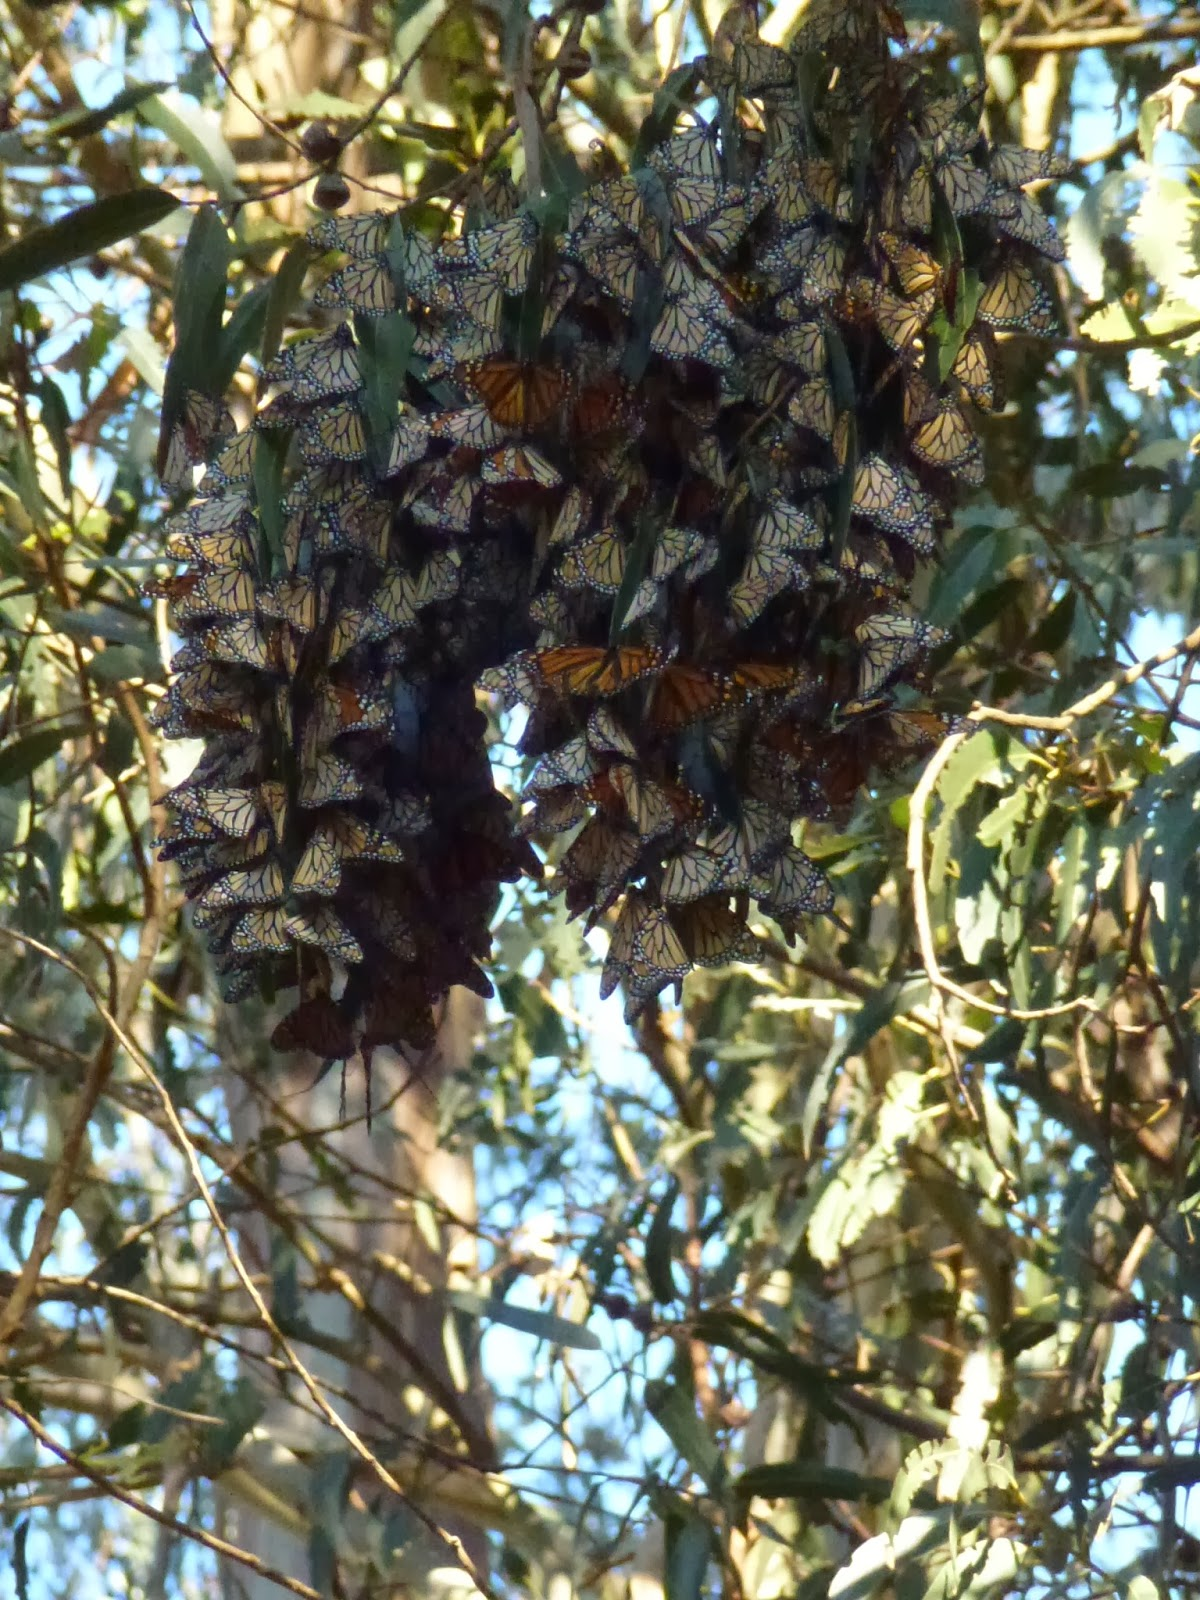 A flight of monarch butterflies cling together in a eucalyptus tree looking like a white, orange and brown leaves.